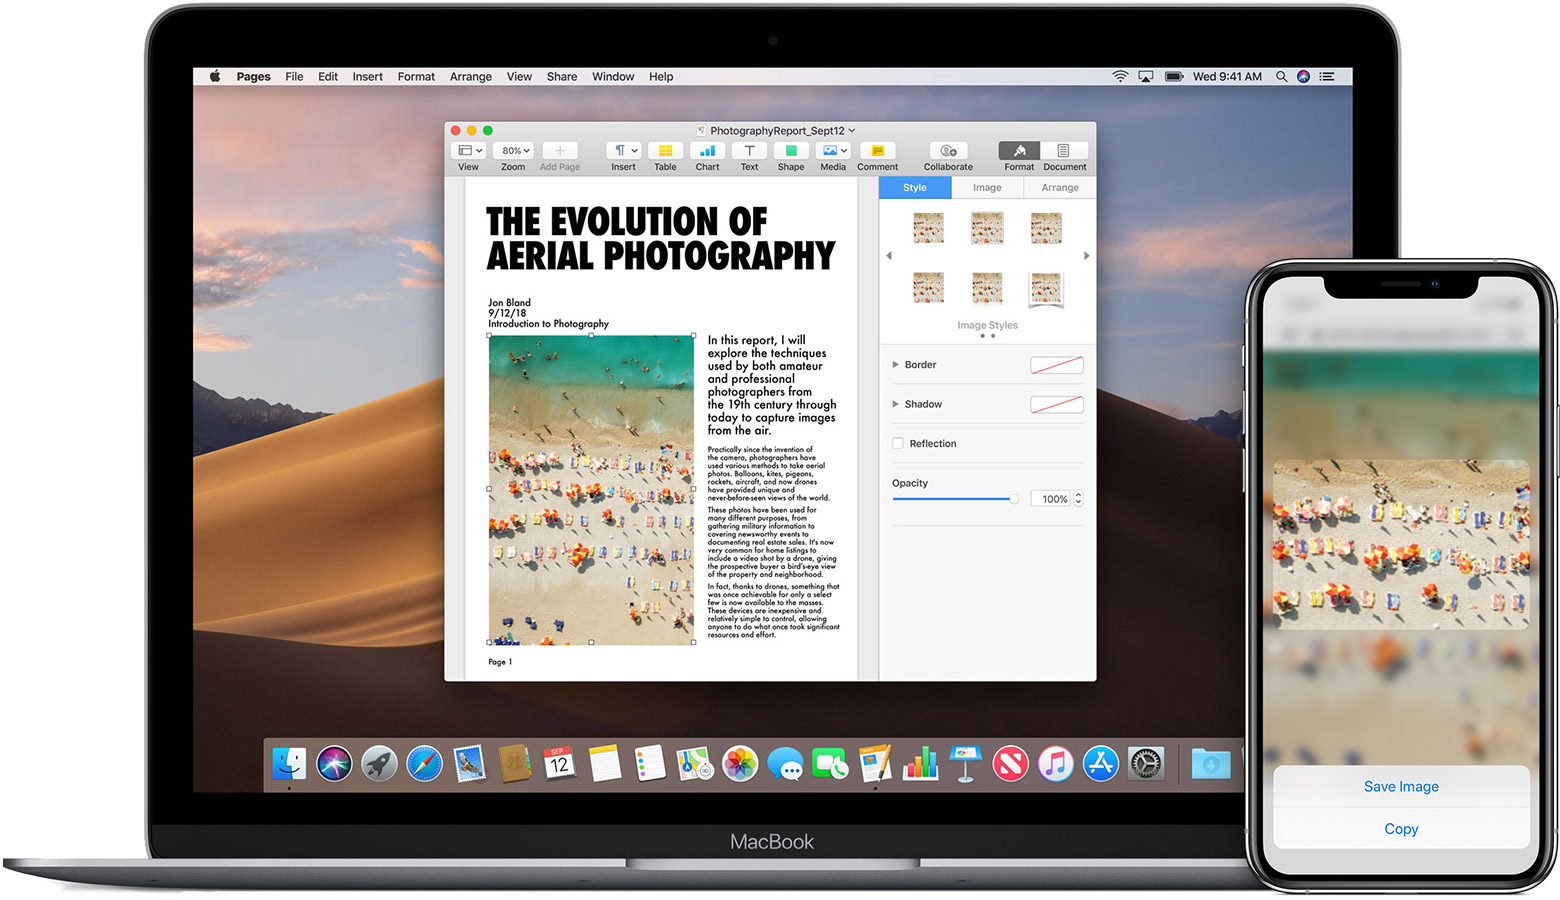 An iPhone displaying an image with the Copy option displayed, alongside a MacBook with a Pages document open that contains the same image.